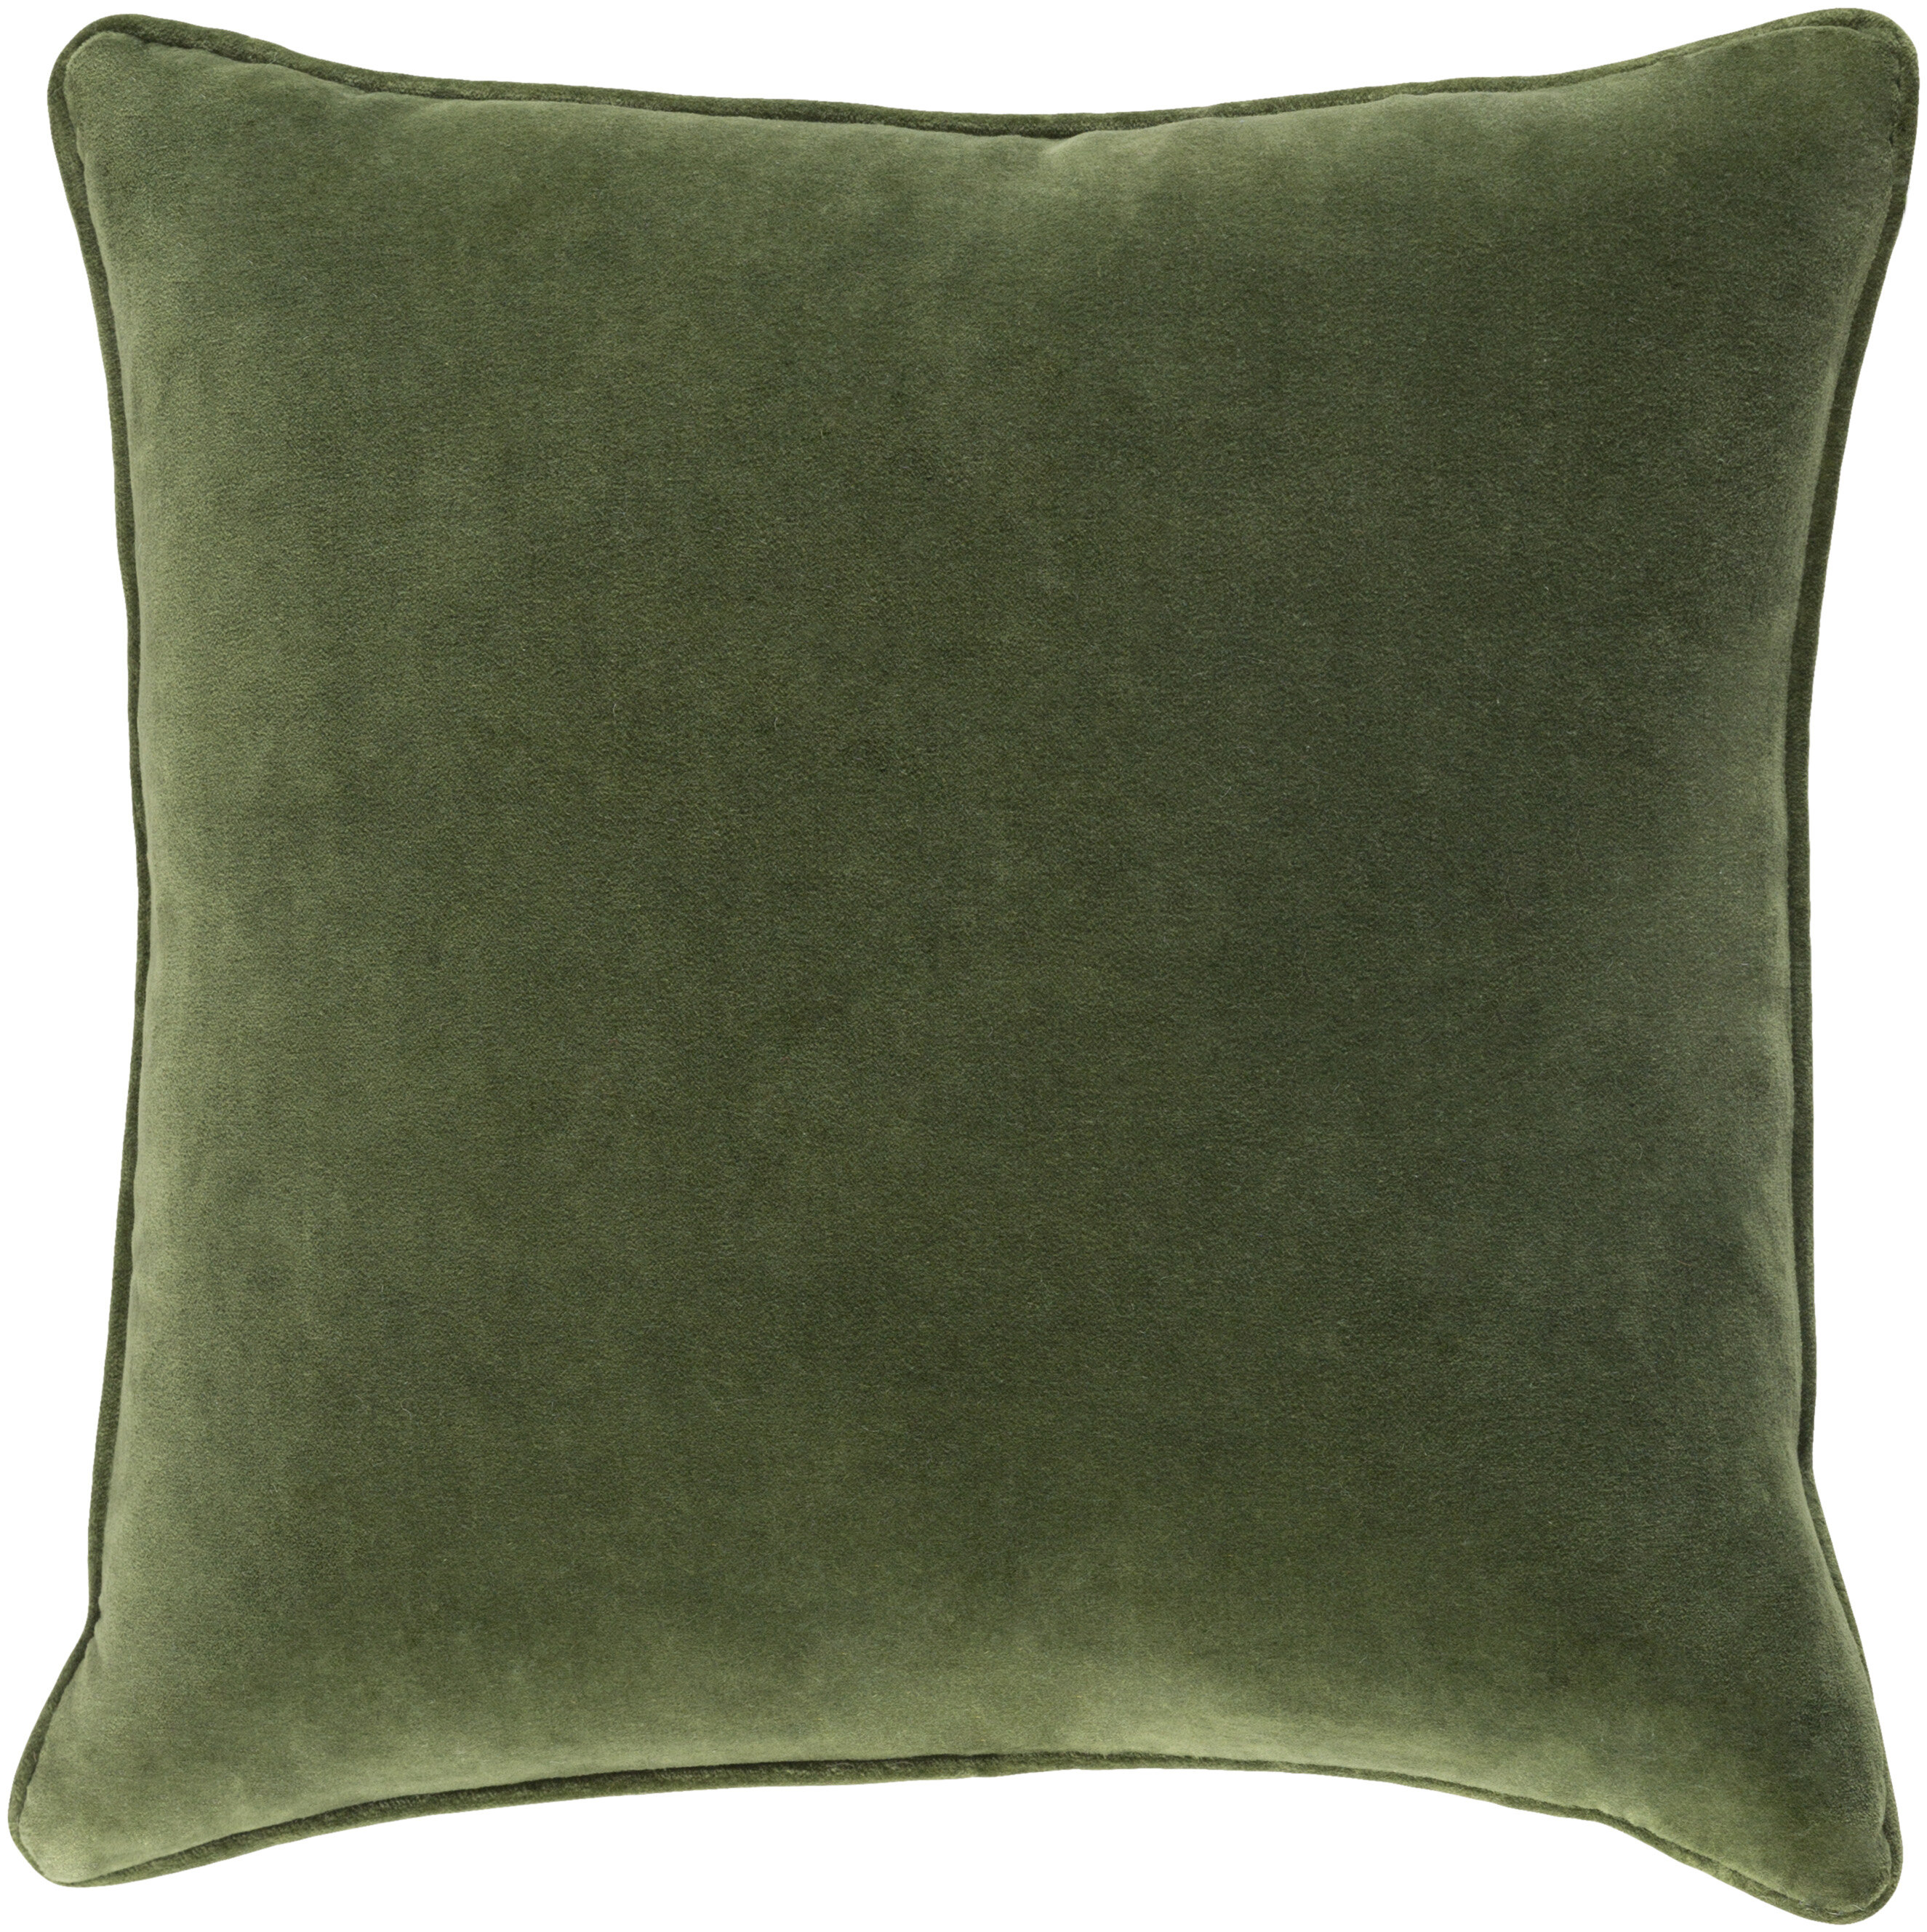 velvet the under numbers emerald is sometimes sku pillow manufacturer listed lavish also temple cushion following webster